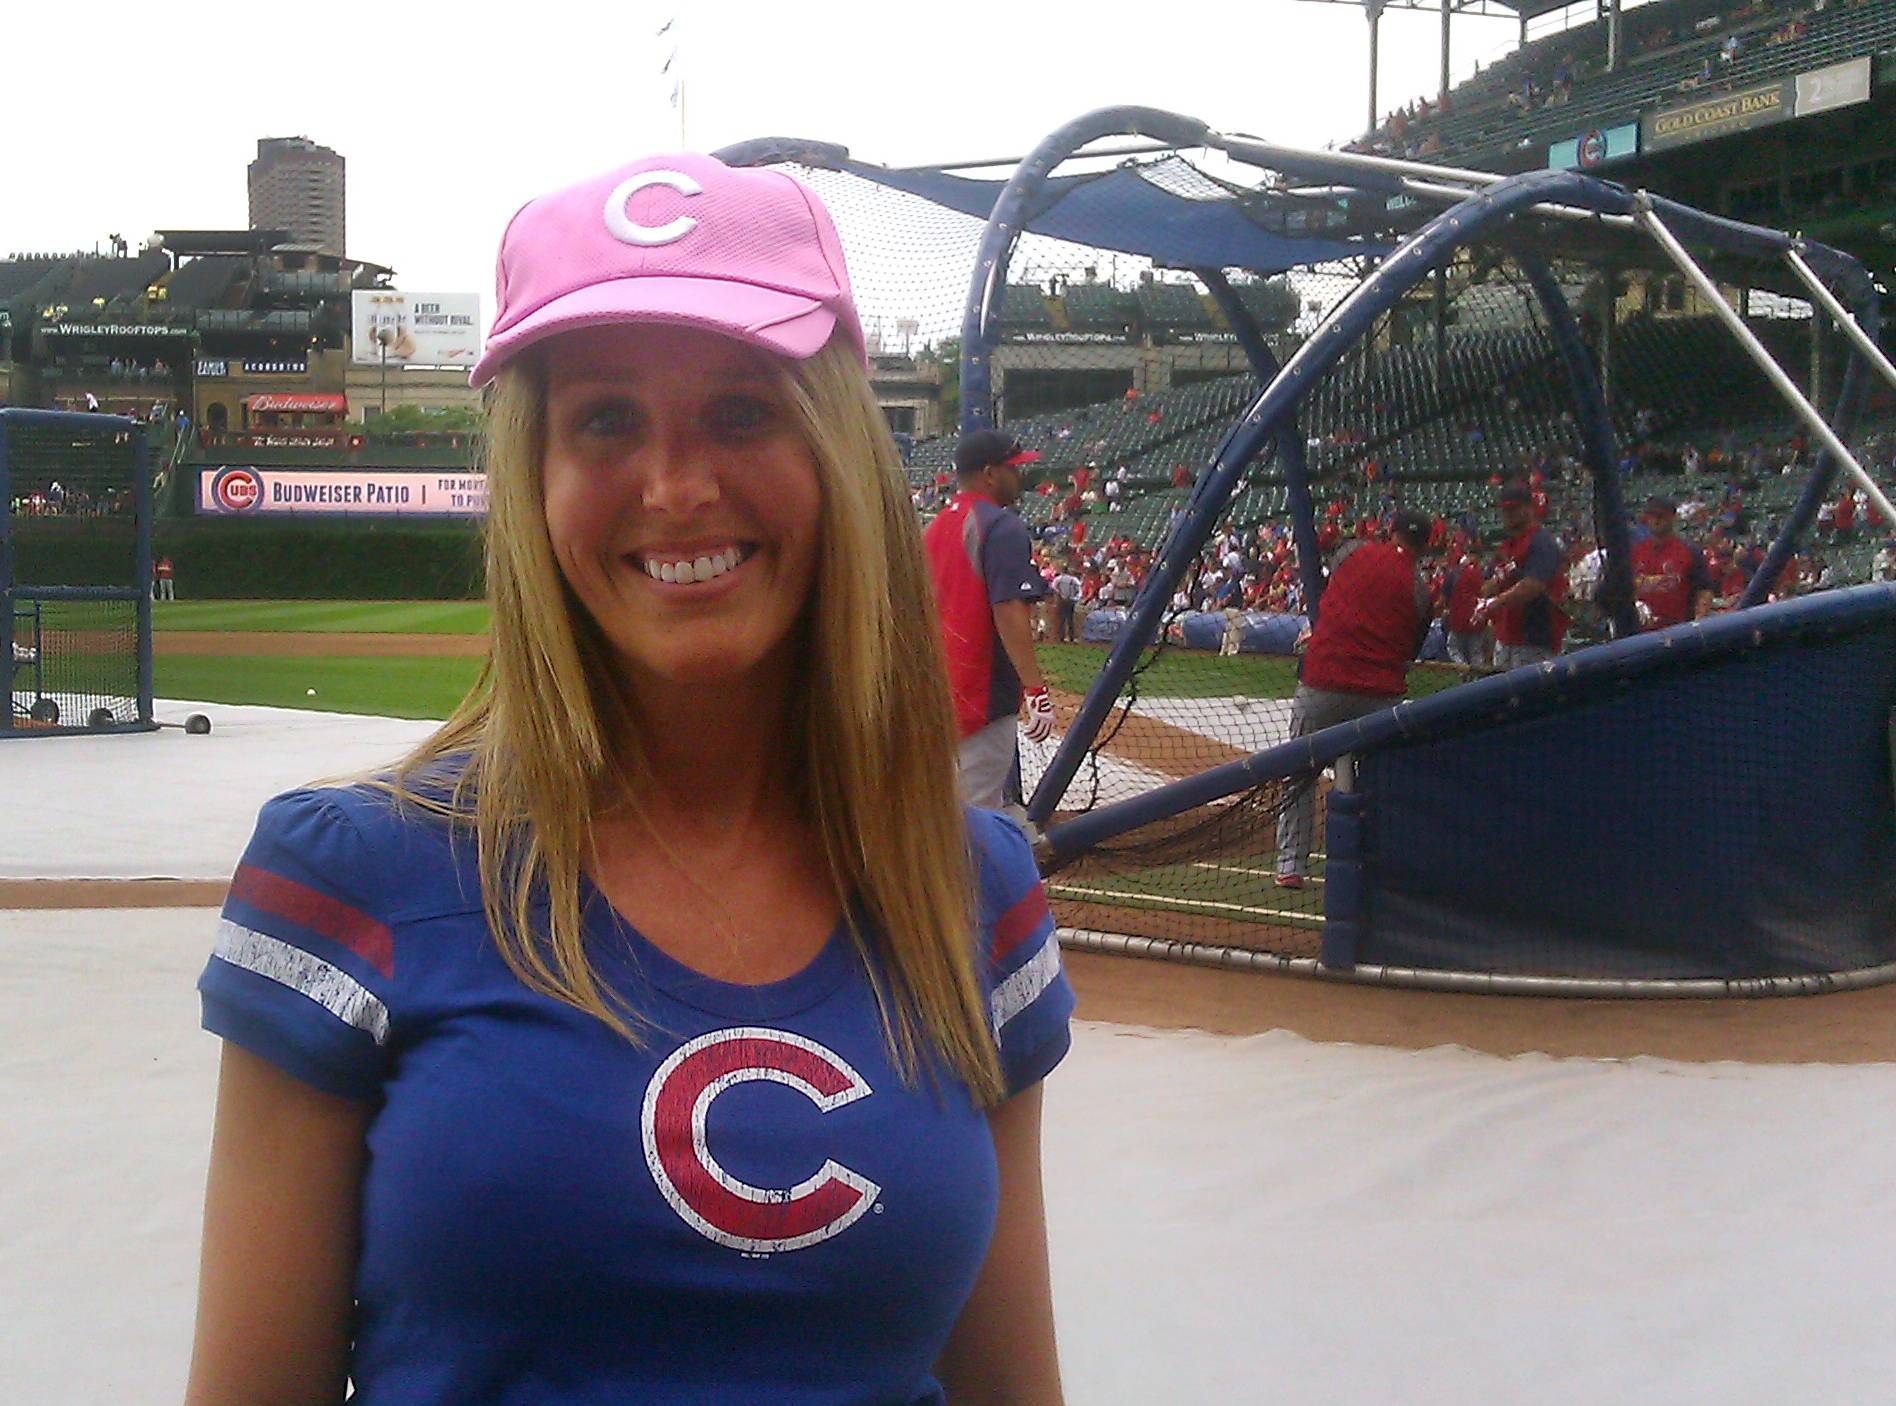 Aimee Suyko, a breast cancer survivor from Cary, enjoys time on Wrigley Field Friday. Suyko threw out a ceremonial first pitch before the Cubs' game against the St. Louis Cardinals.